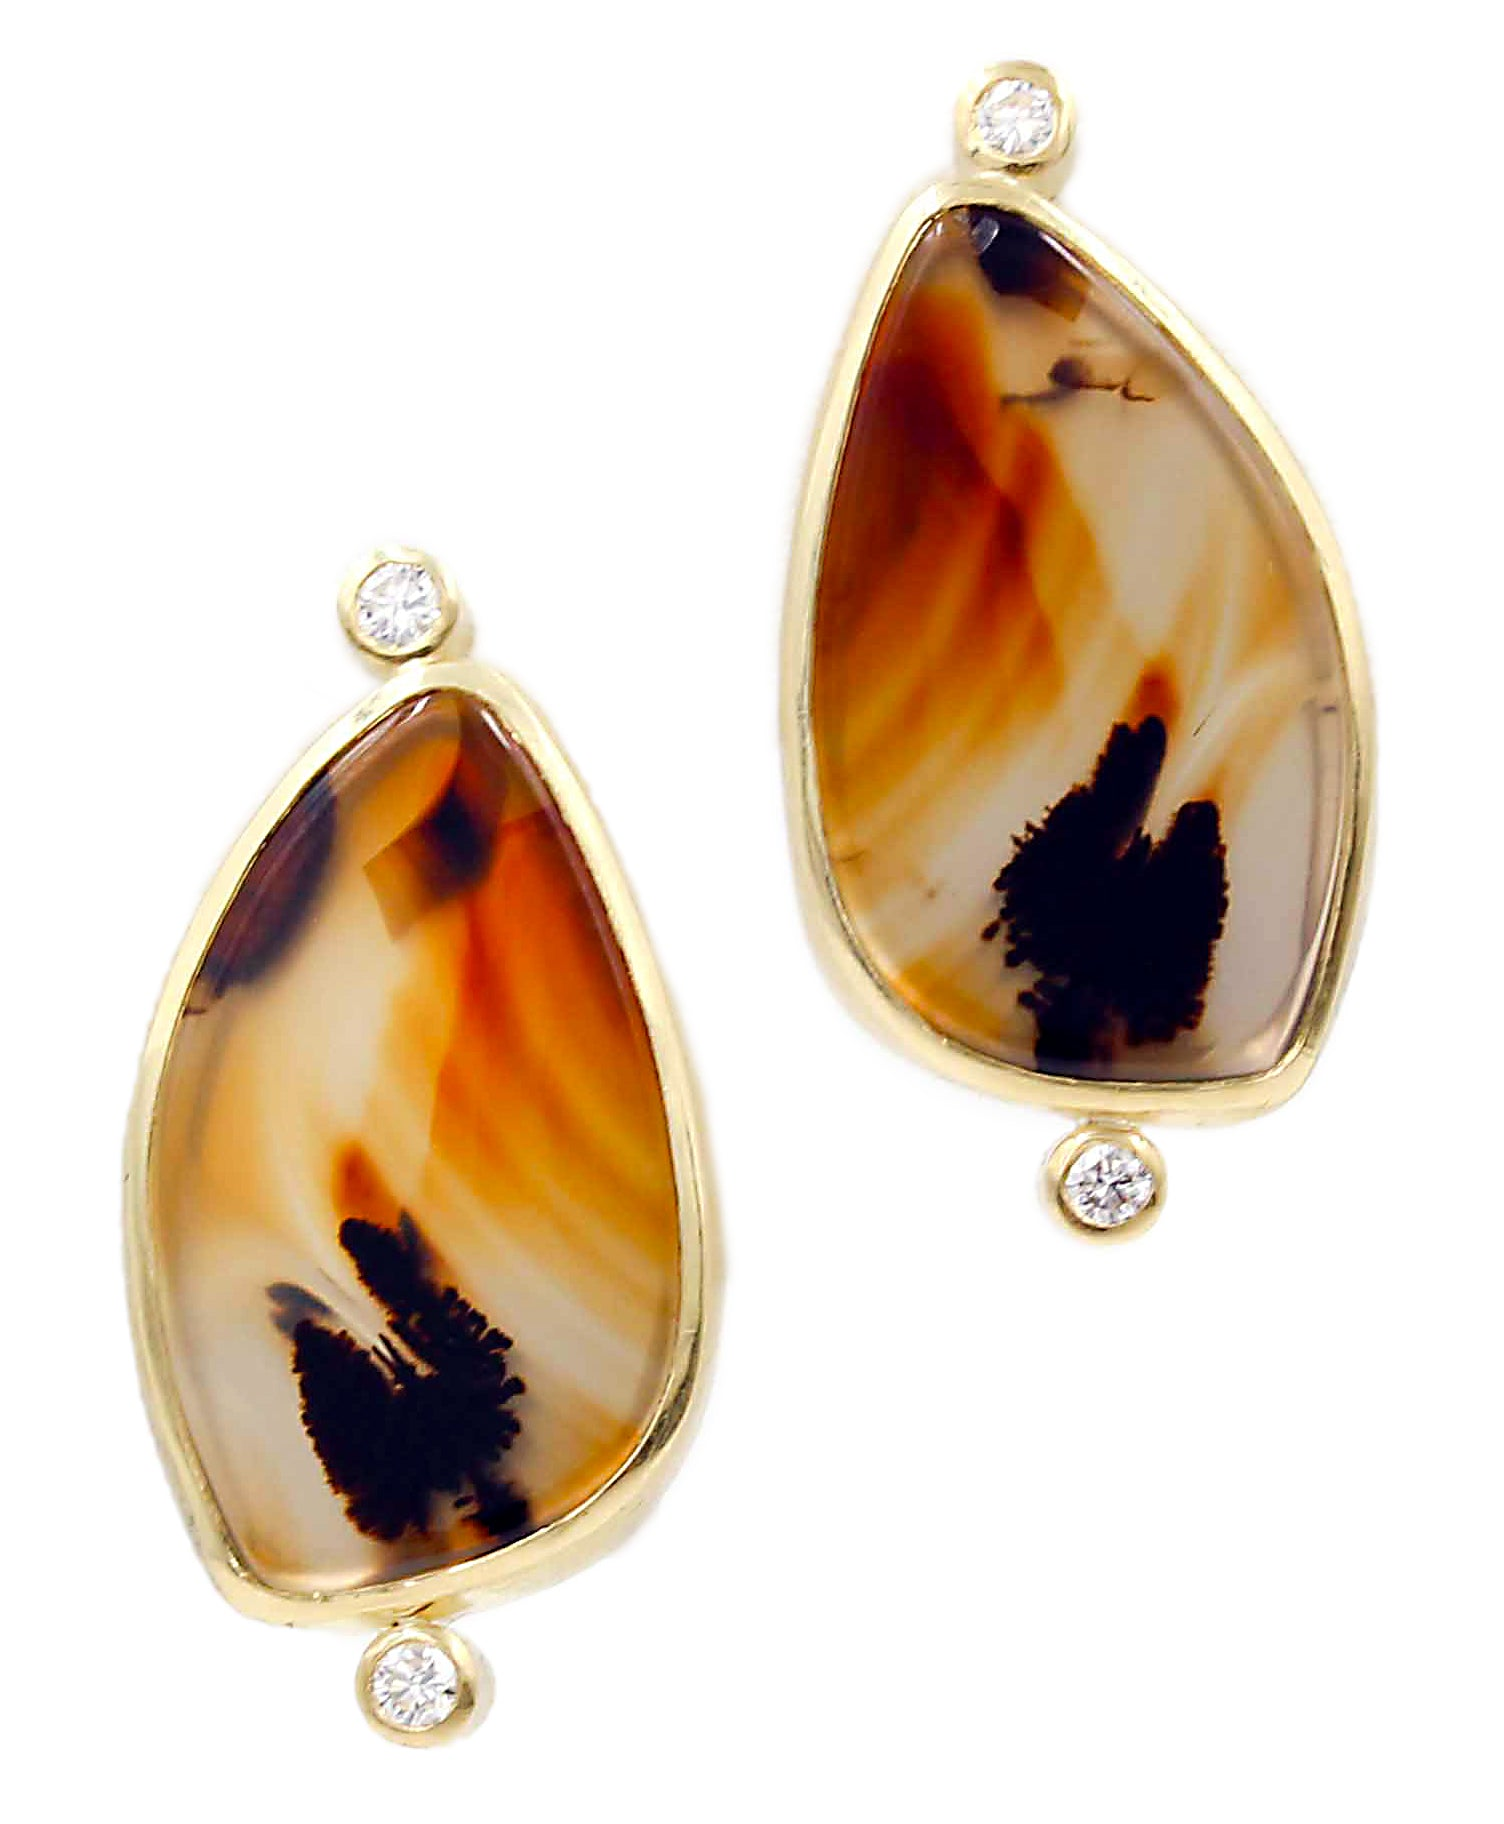 18K Agate Stud earrings